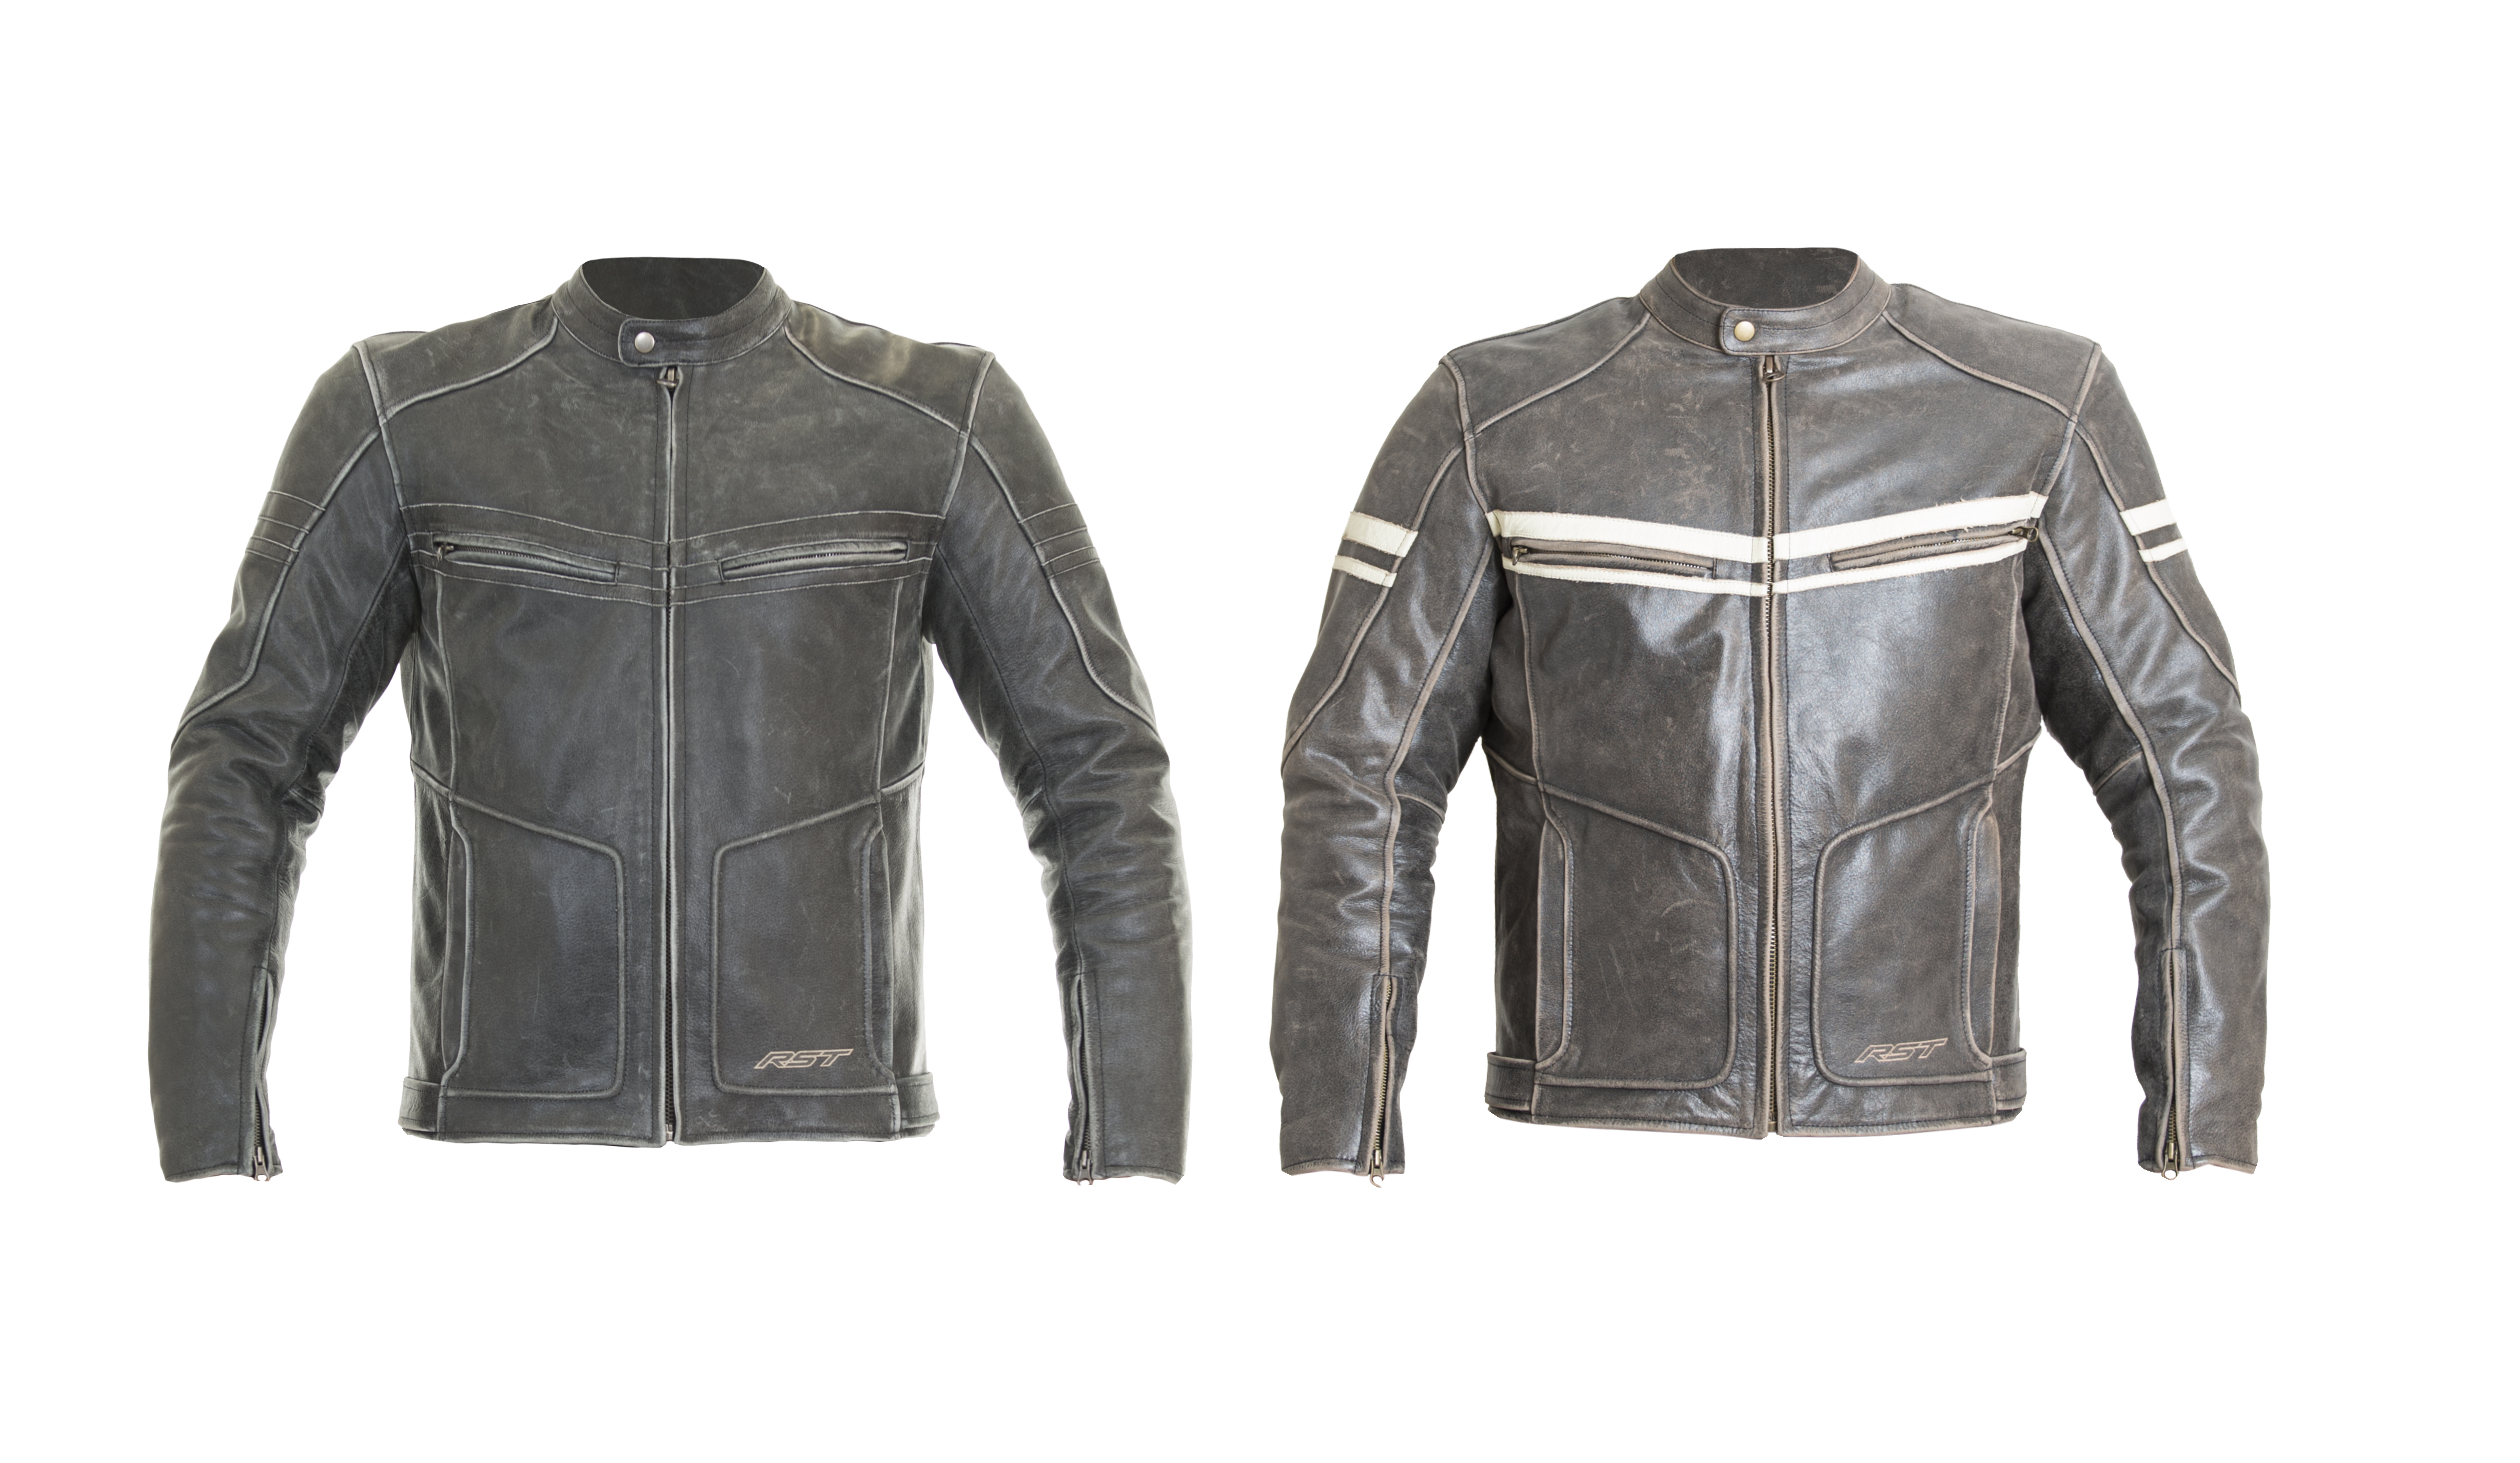 e7b57dc42d7 and if you re wiping off the cobwebs on your bike and dusting down your  helmet and find a patch of mould on your leather jacket that s ...